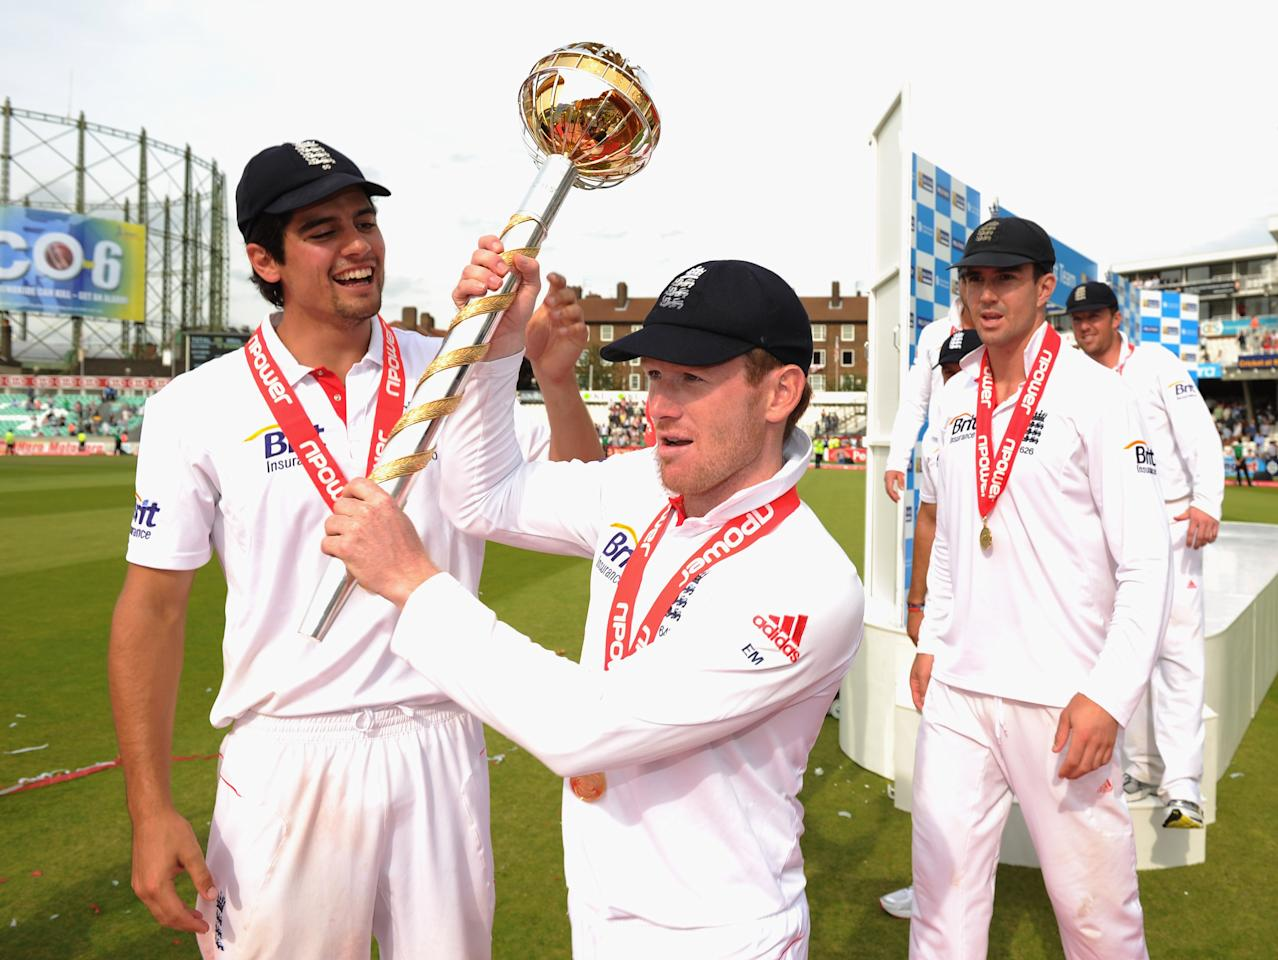 LONDON, ENGLAND - AUGUST 22: (L-R) Alastair Cook, Eoin Morgan and Kevin Pietersen of England celebrate the series victory with the ICC Test Championship Mace as England become the number one ranked team during day five of the 4th npower Test Match between England and India at The Kia Oval on August 22, 2011 in London, England.  (Photo by Gareth Copley/Getty Images)